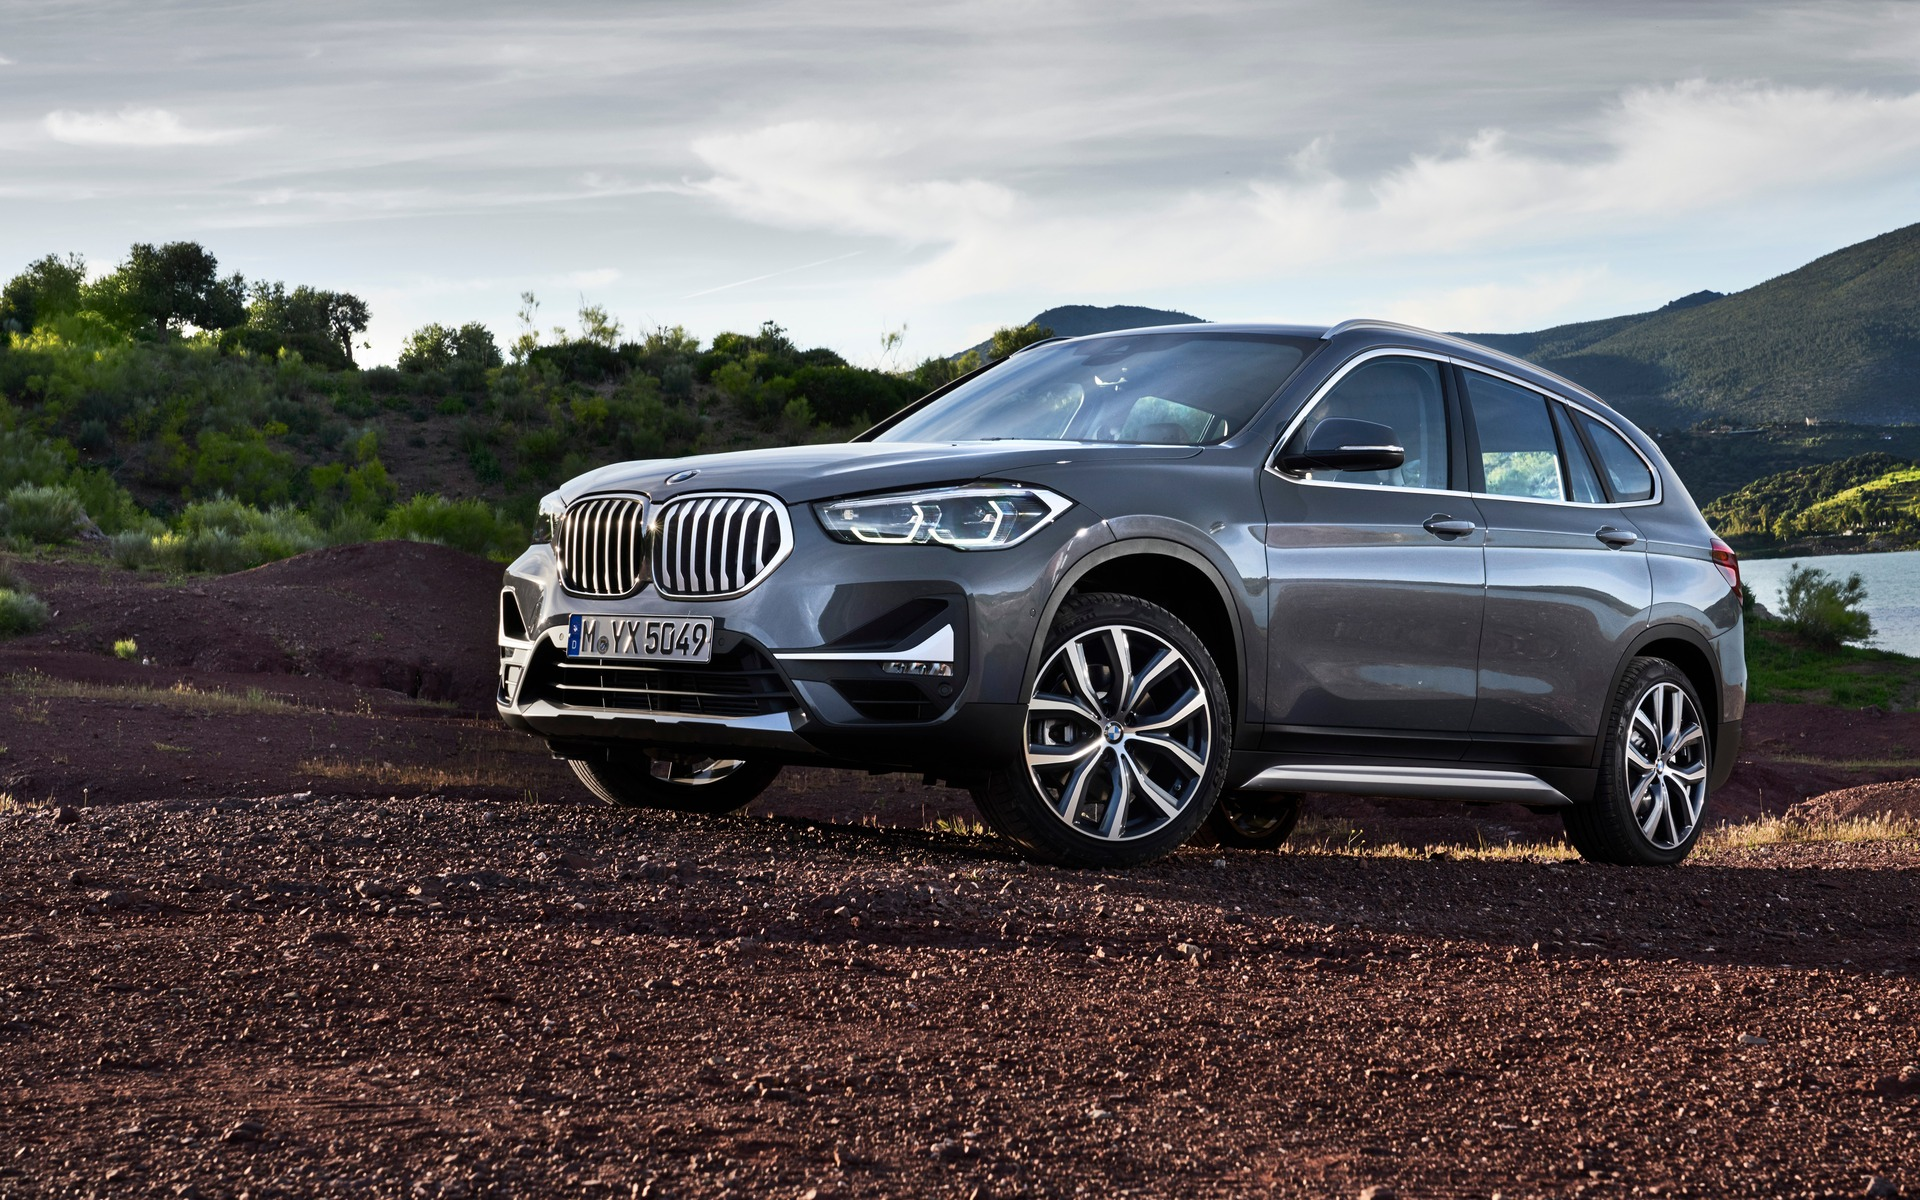 2020 Bmw X1 Announced With Updated Styling And More The Car Guide